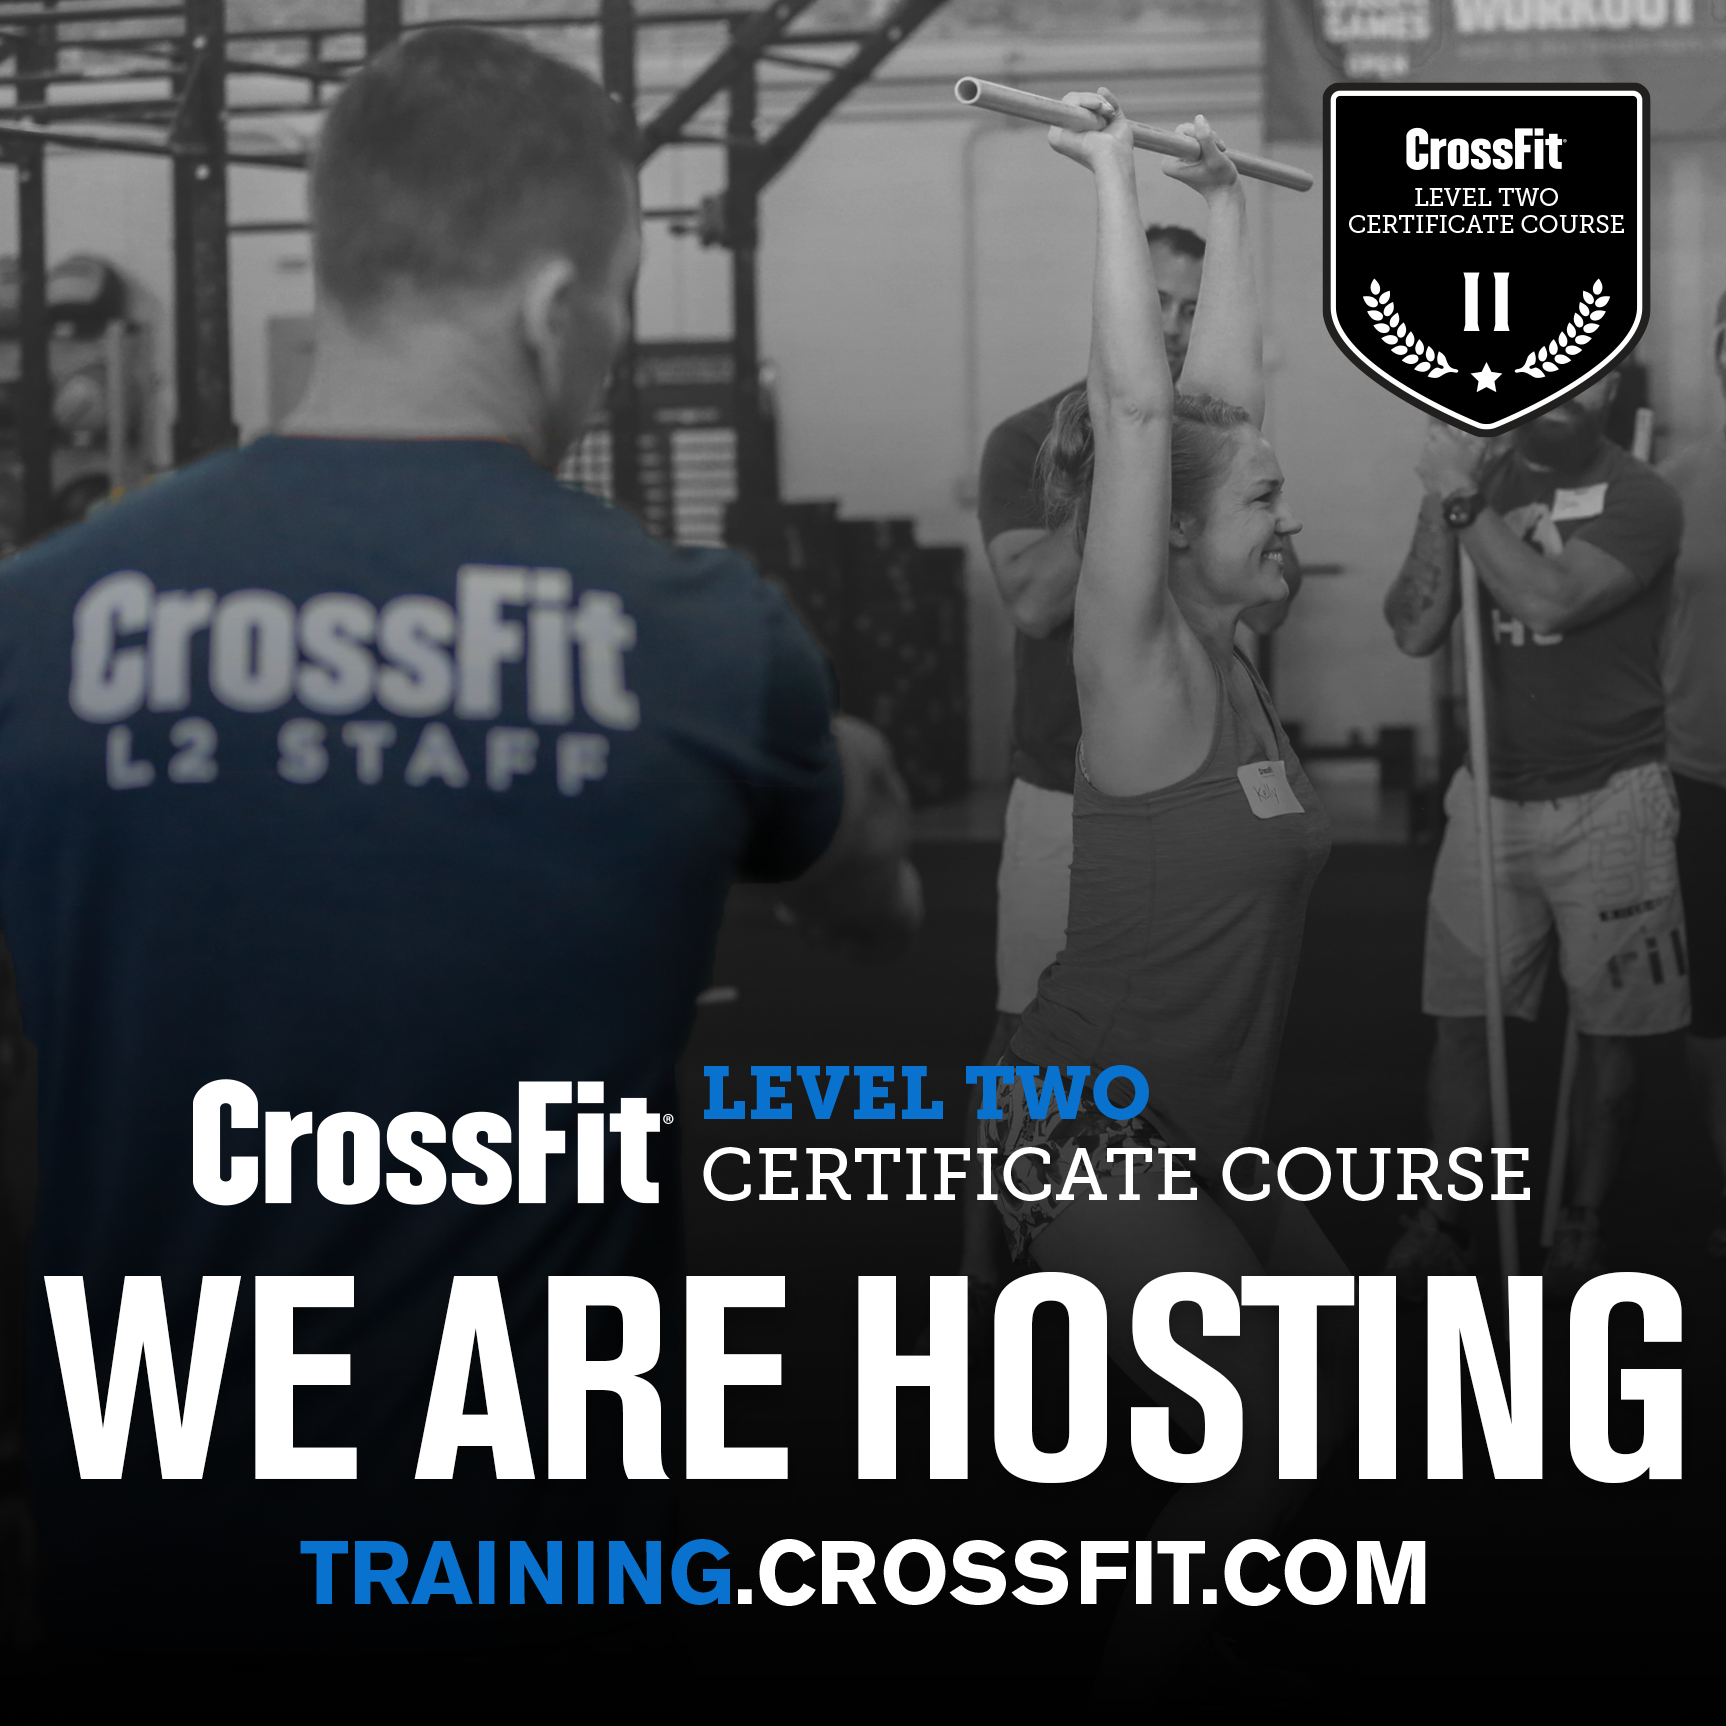 As a reminder, the gym will be closed this weekend, March 30/31 for the Level 2 course we are hosting.  This one is full, but if you are interested in attending, we are hosting another on May 11/12. Visit  training.crossfit.com  to register.